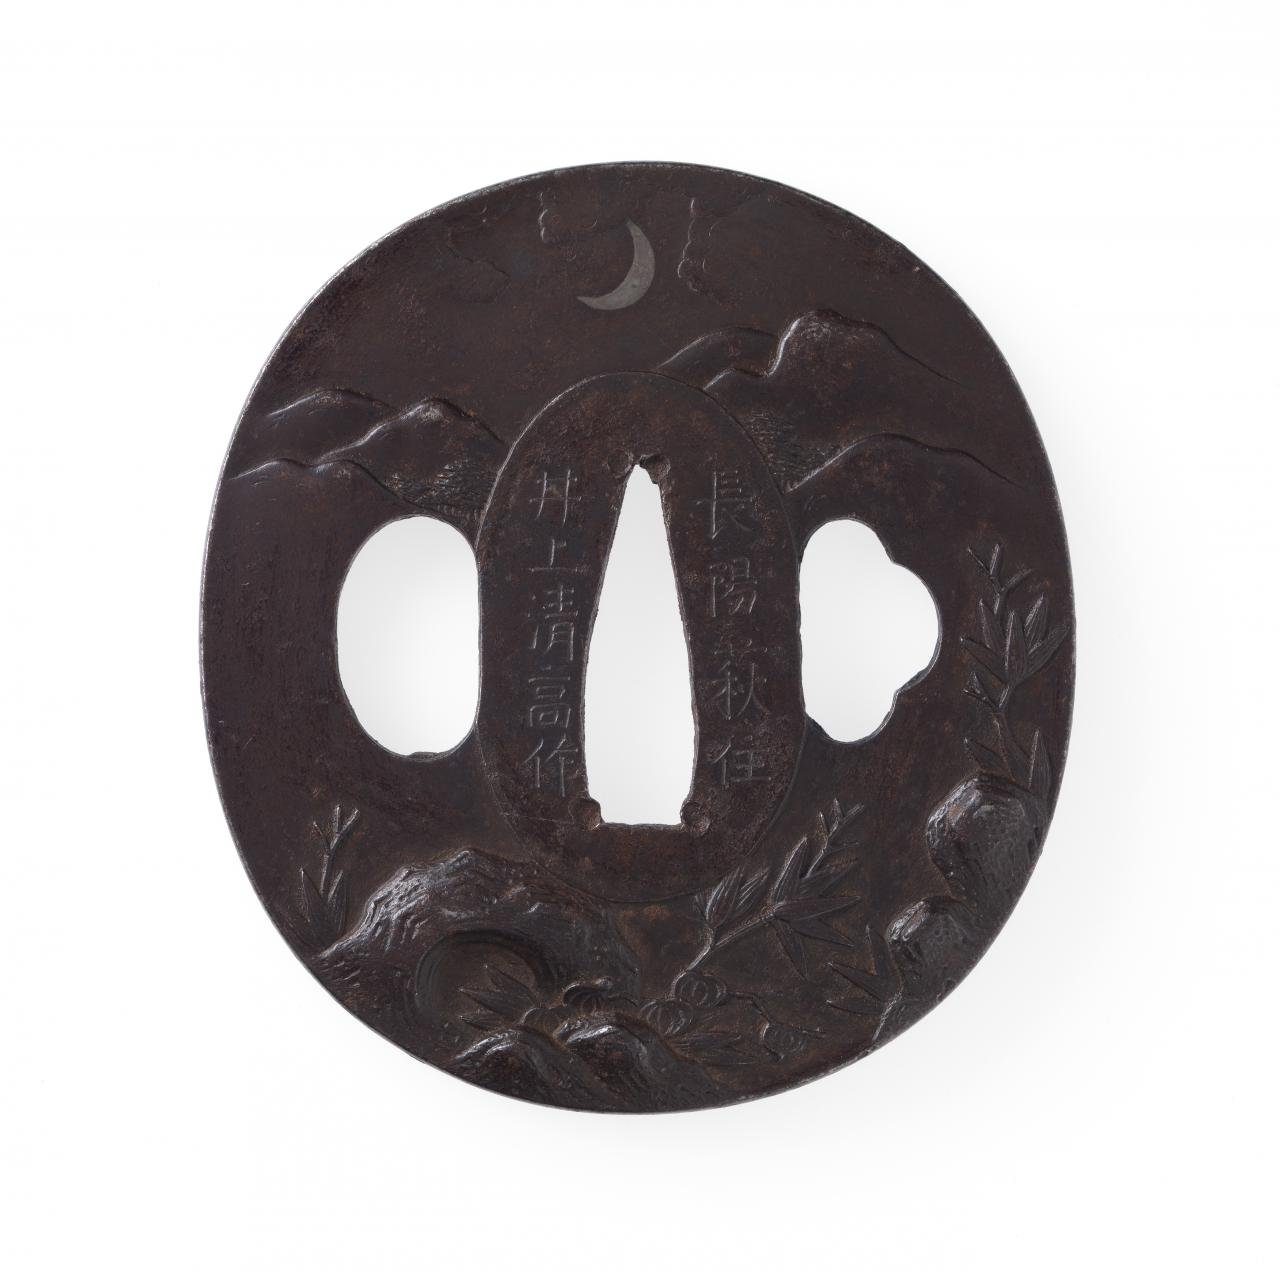 Sword guard with crescent moon and landscape design